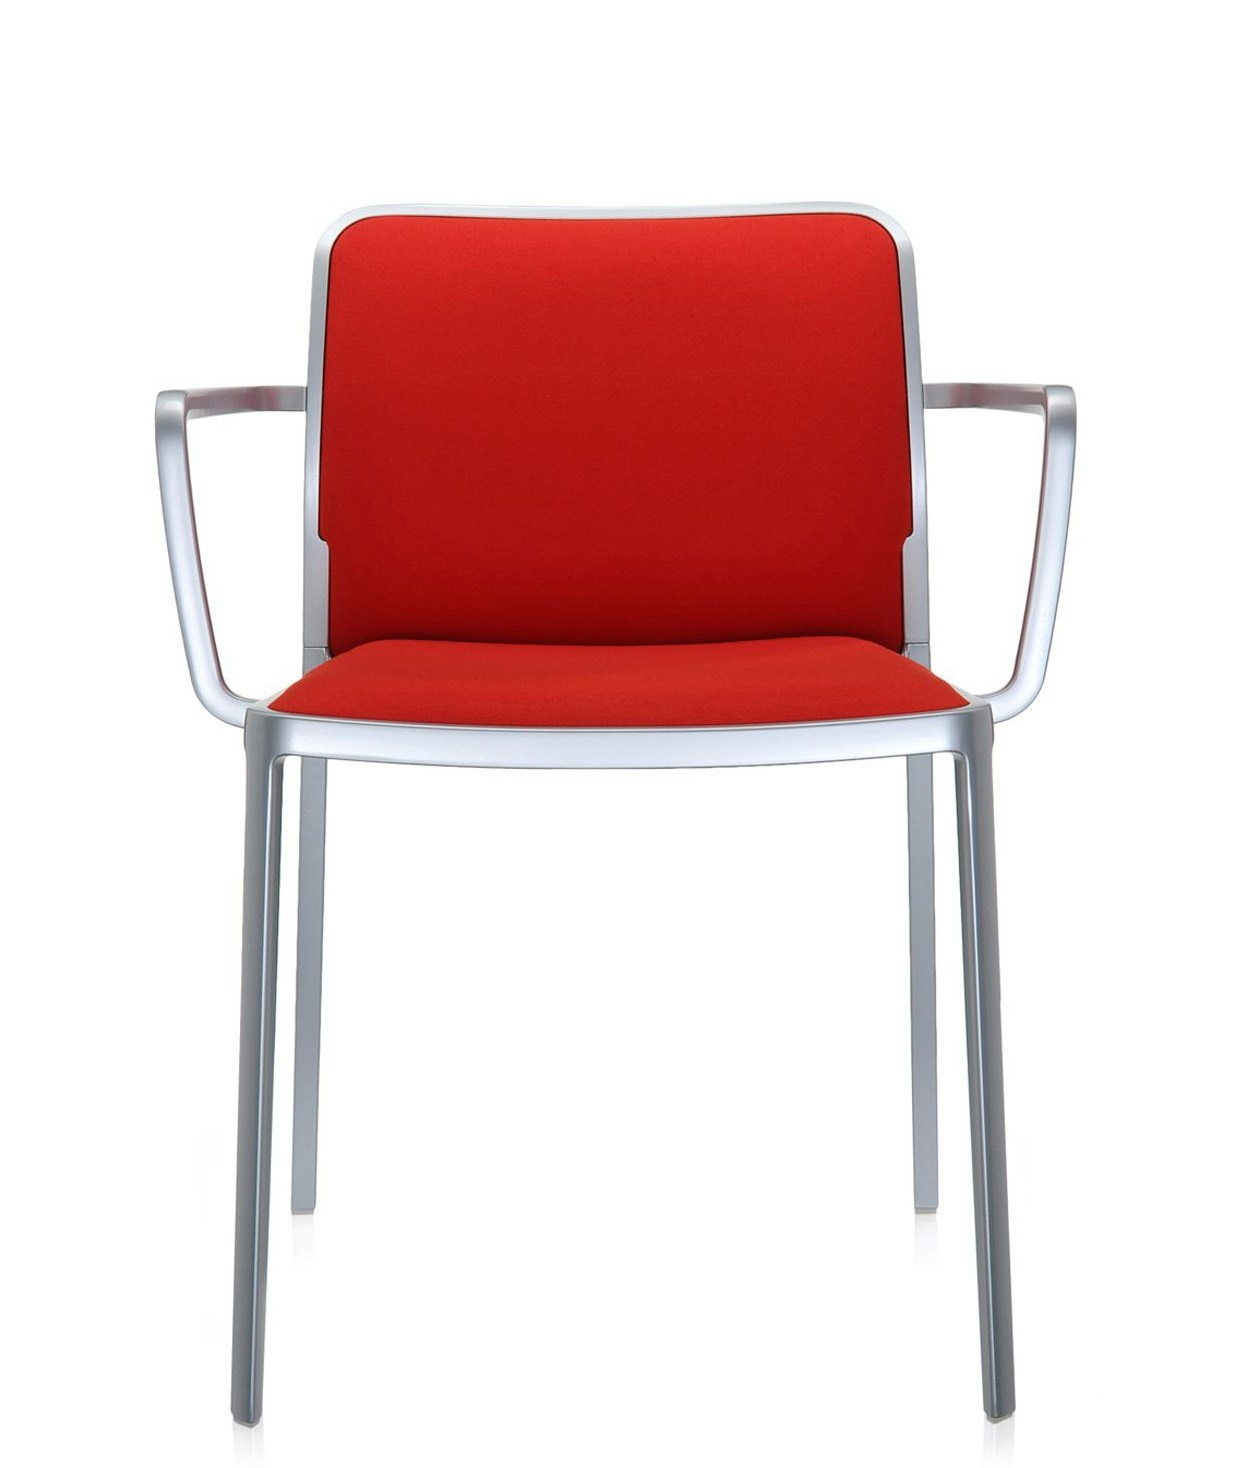 Kartell Audrey Soft Armchair (Priced Each, Sold in Sets of 2)